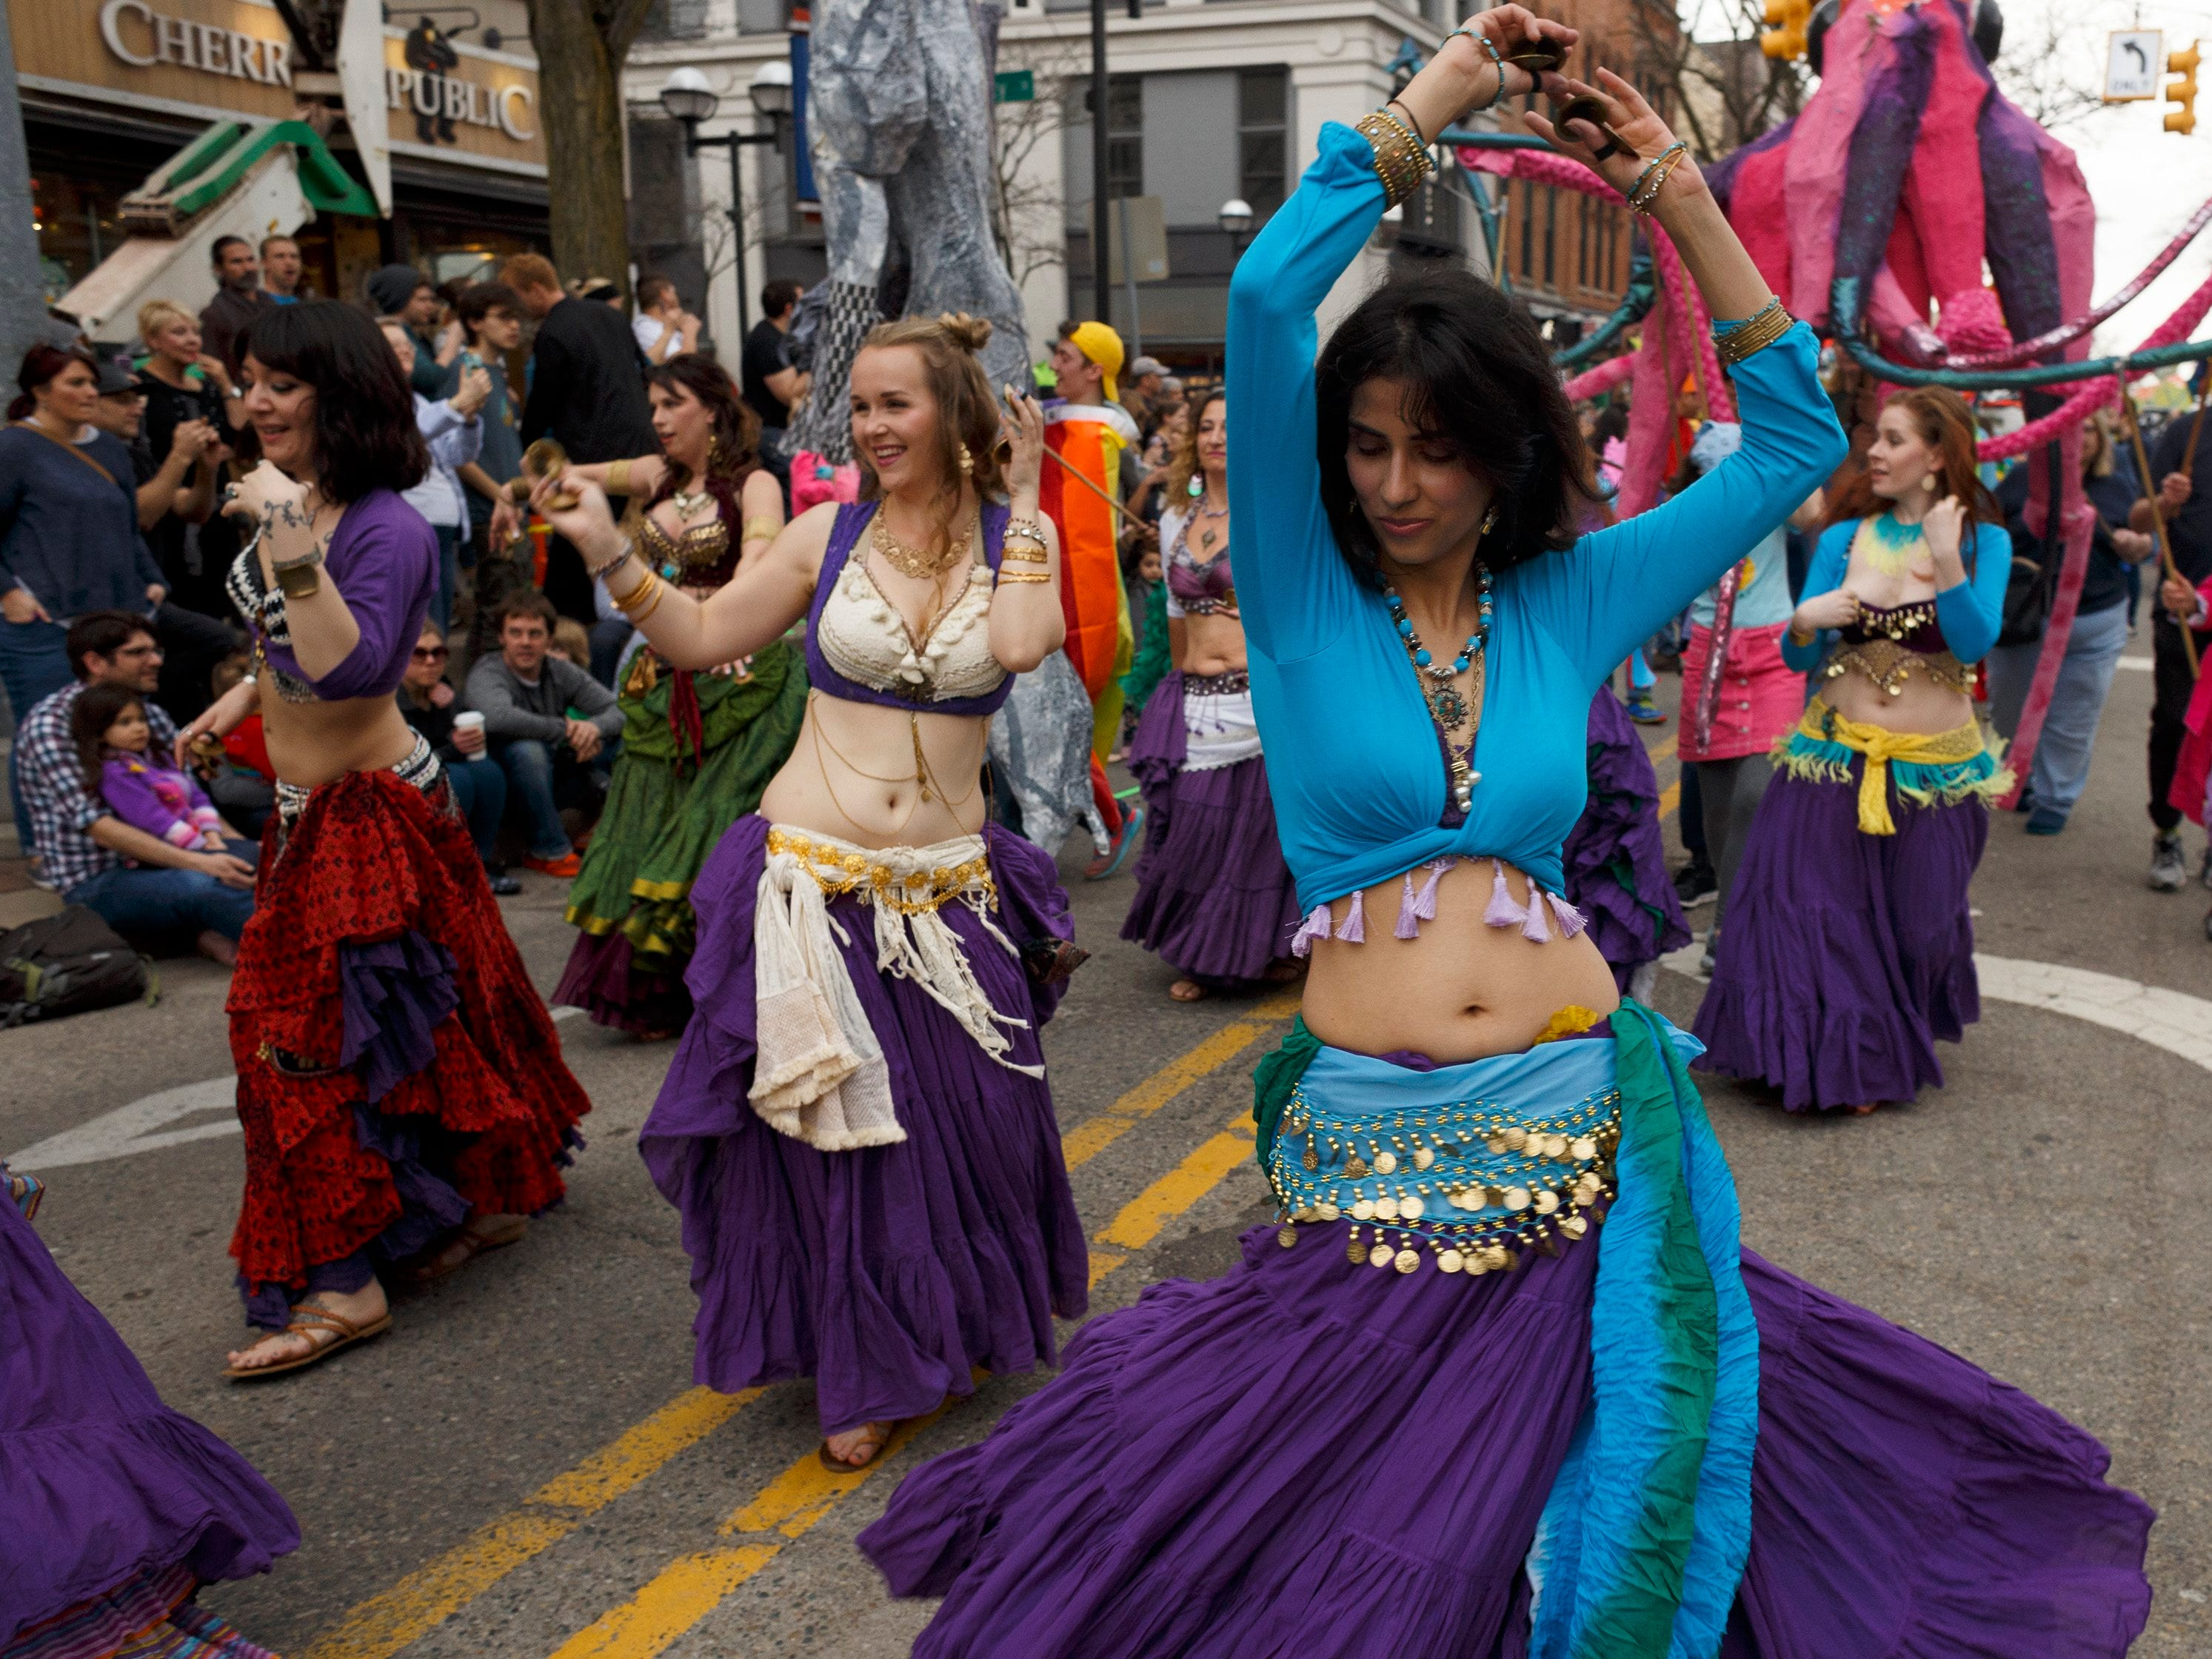 Belly dancers make their way down South Main Street during the annual FestiFools parade on Sunday, April 7, 2019 in downtown Ann Arbor.